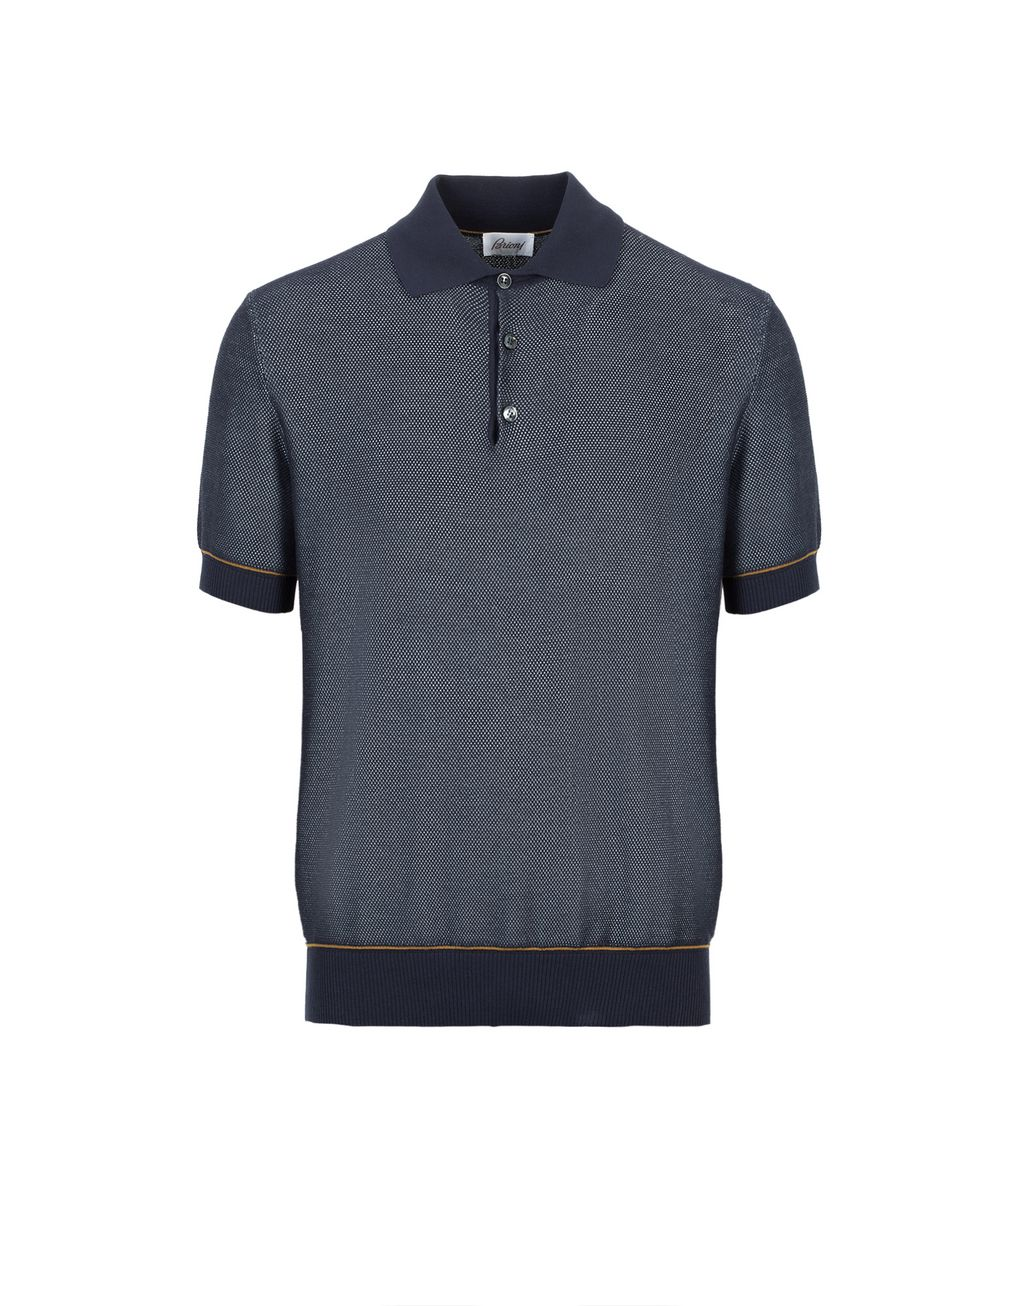 BRIONI Navy-Blue Cotton and Silk Piqué Polo Shirt T-Shirts & Polos Man f